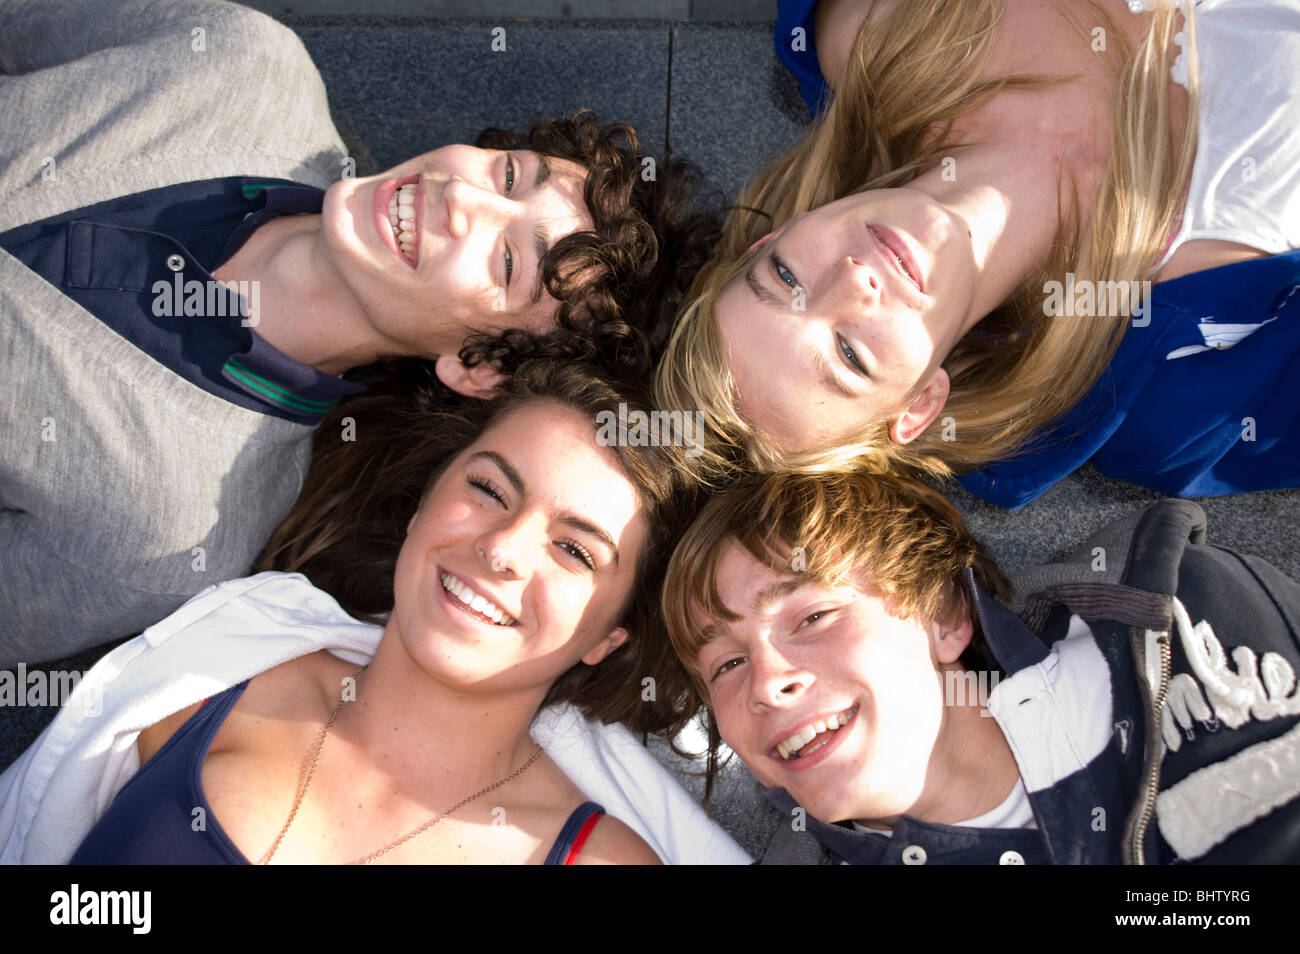 Teenagers. 2 Boys 2 Girls All Lay Down Looking Up Laughing